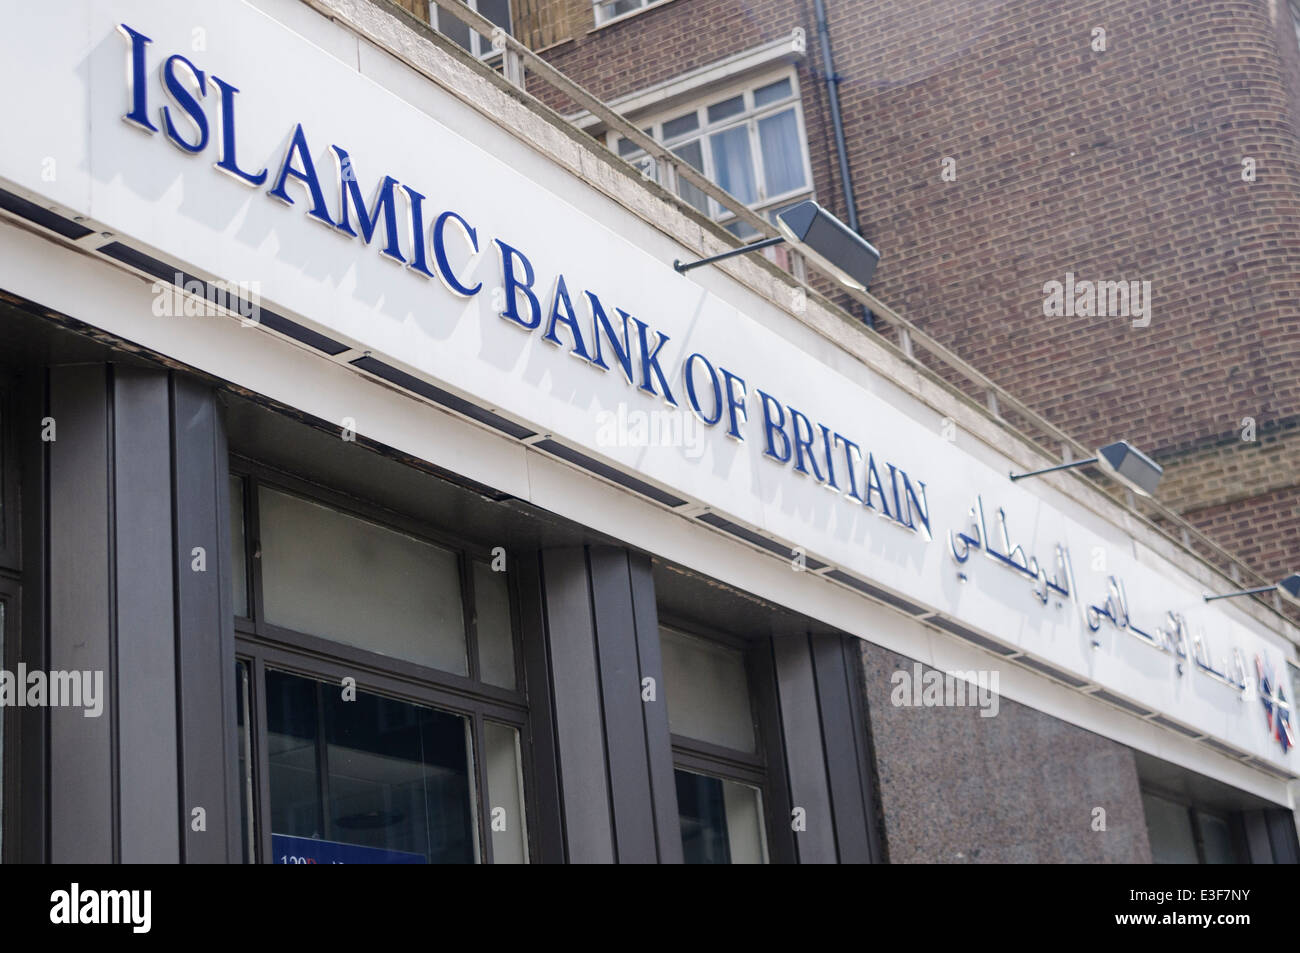 Sign for the Islamic Bank of Britain - Stock Image